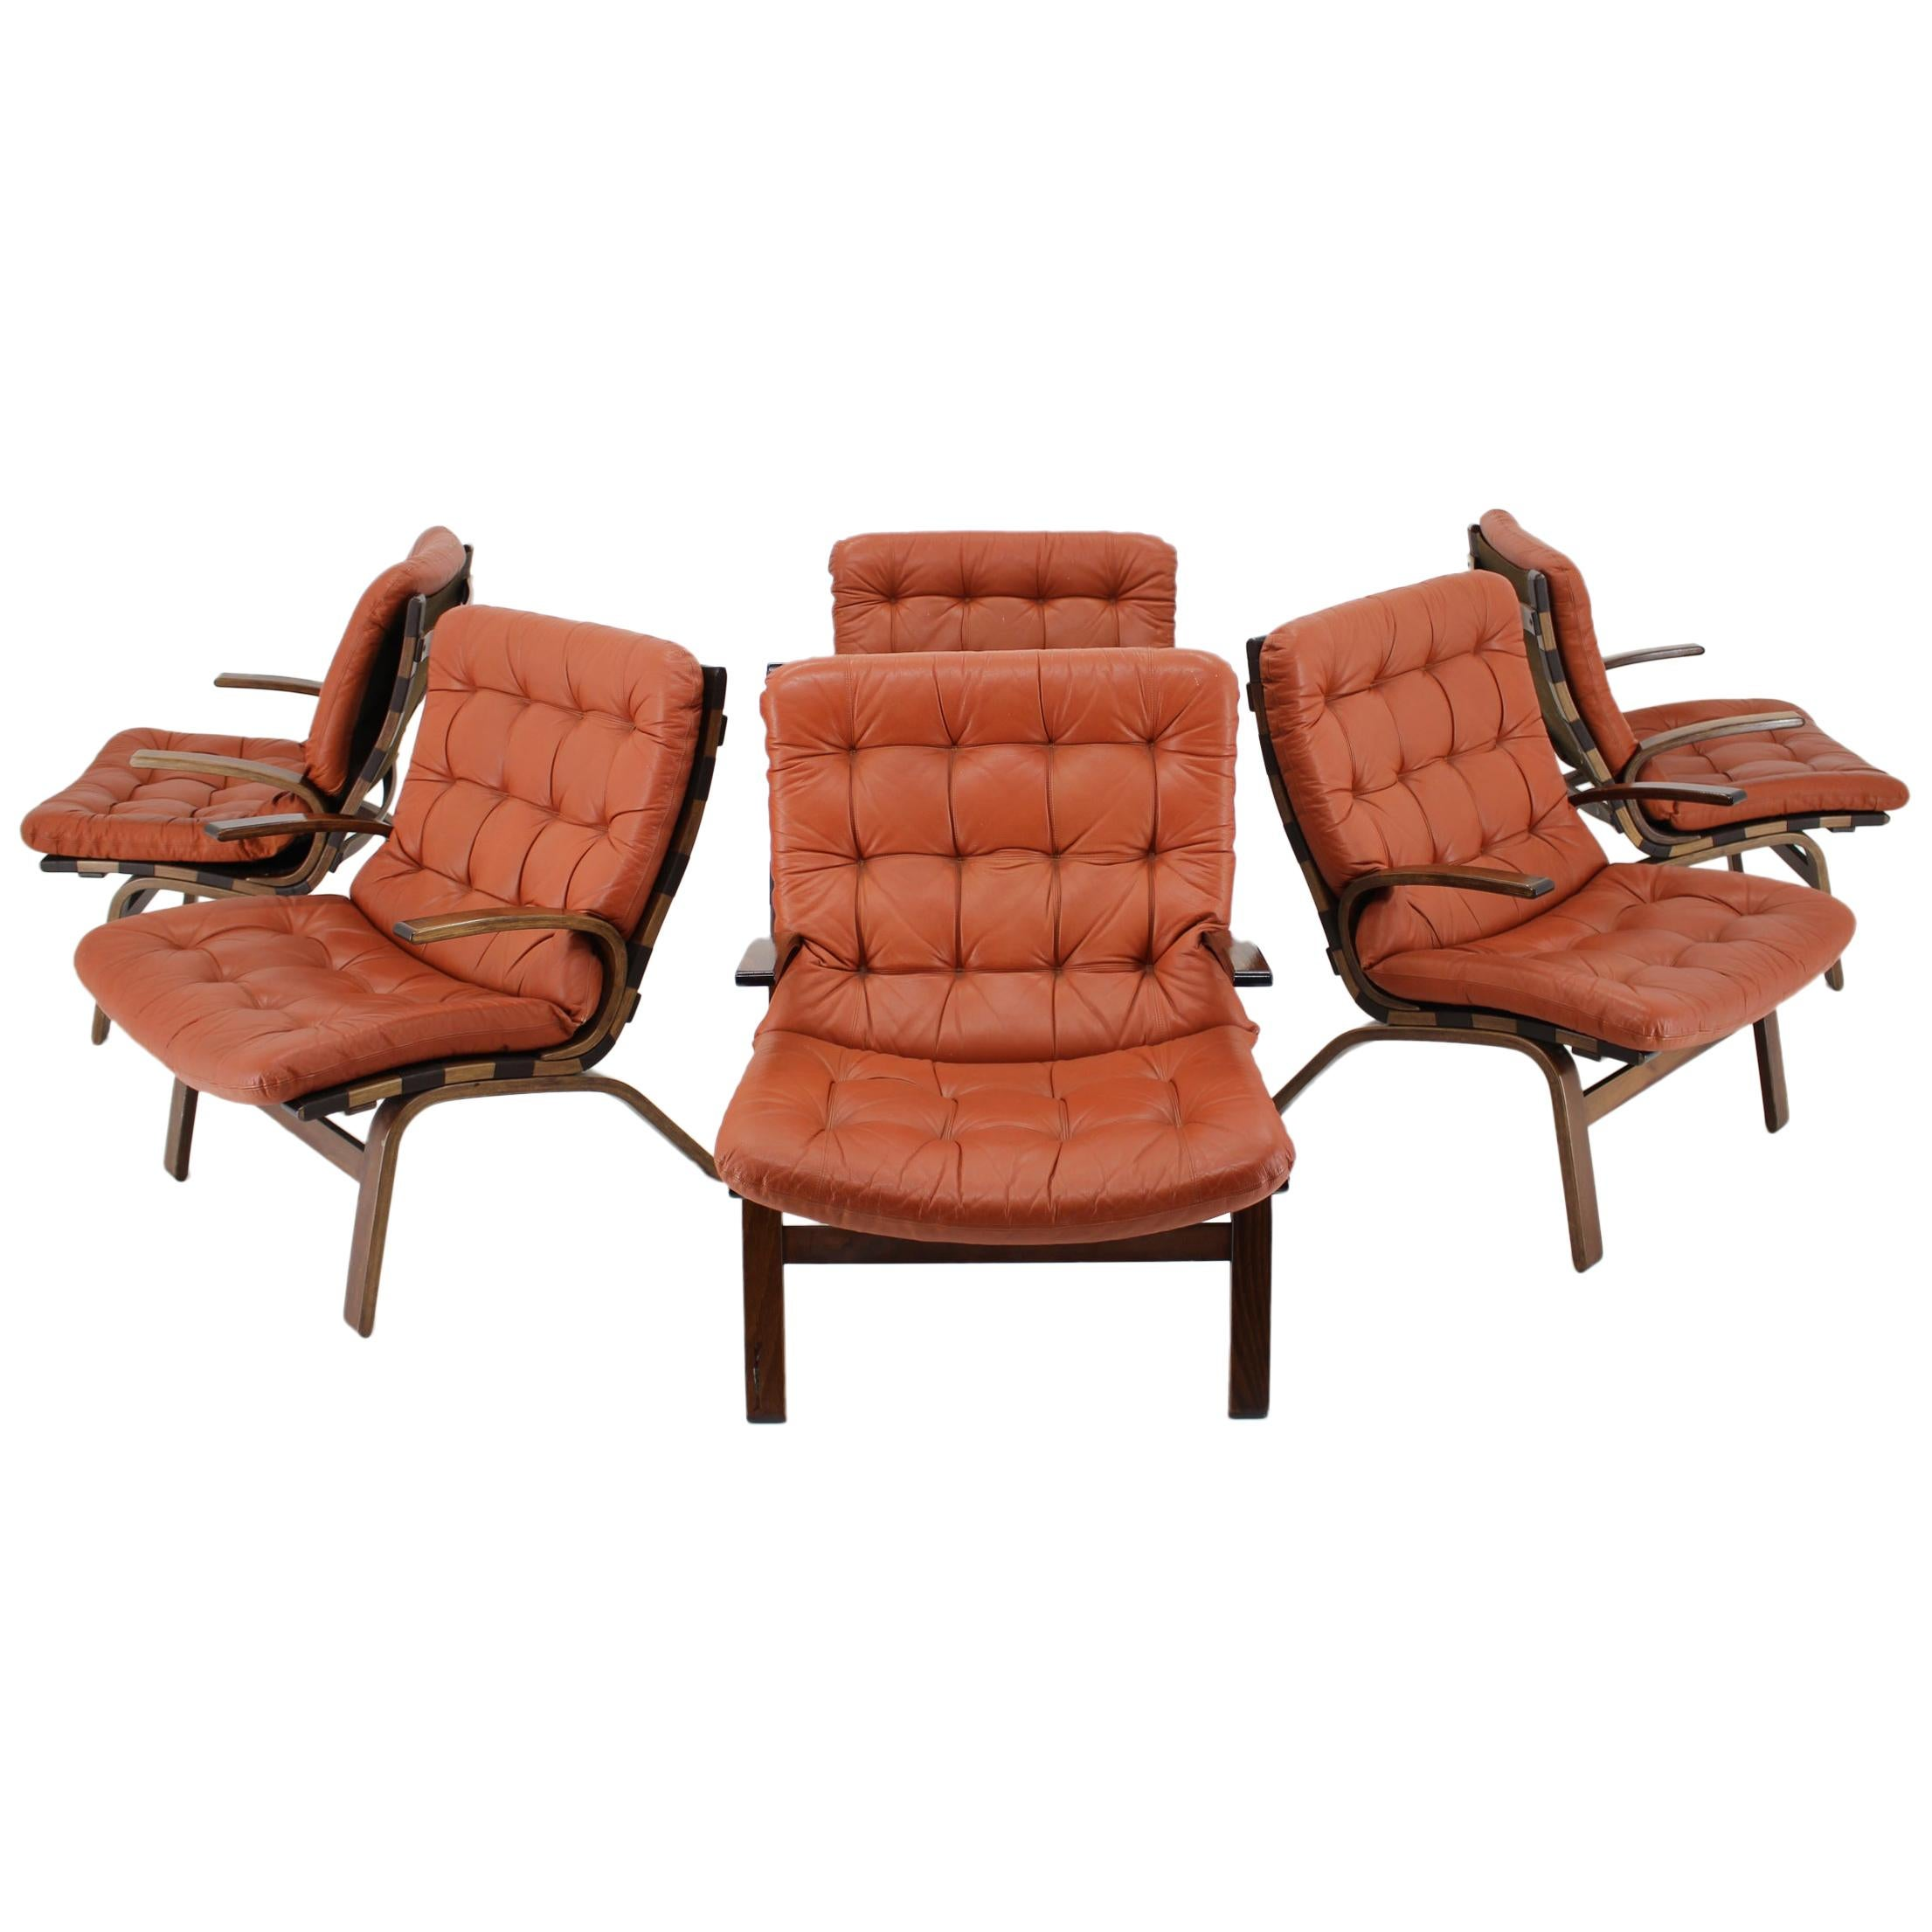 1970s Danish Bentwood Armchair in Red Leather